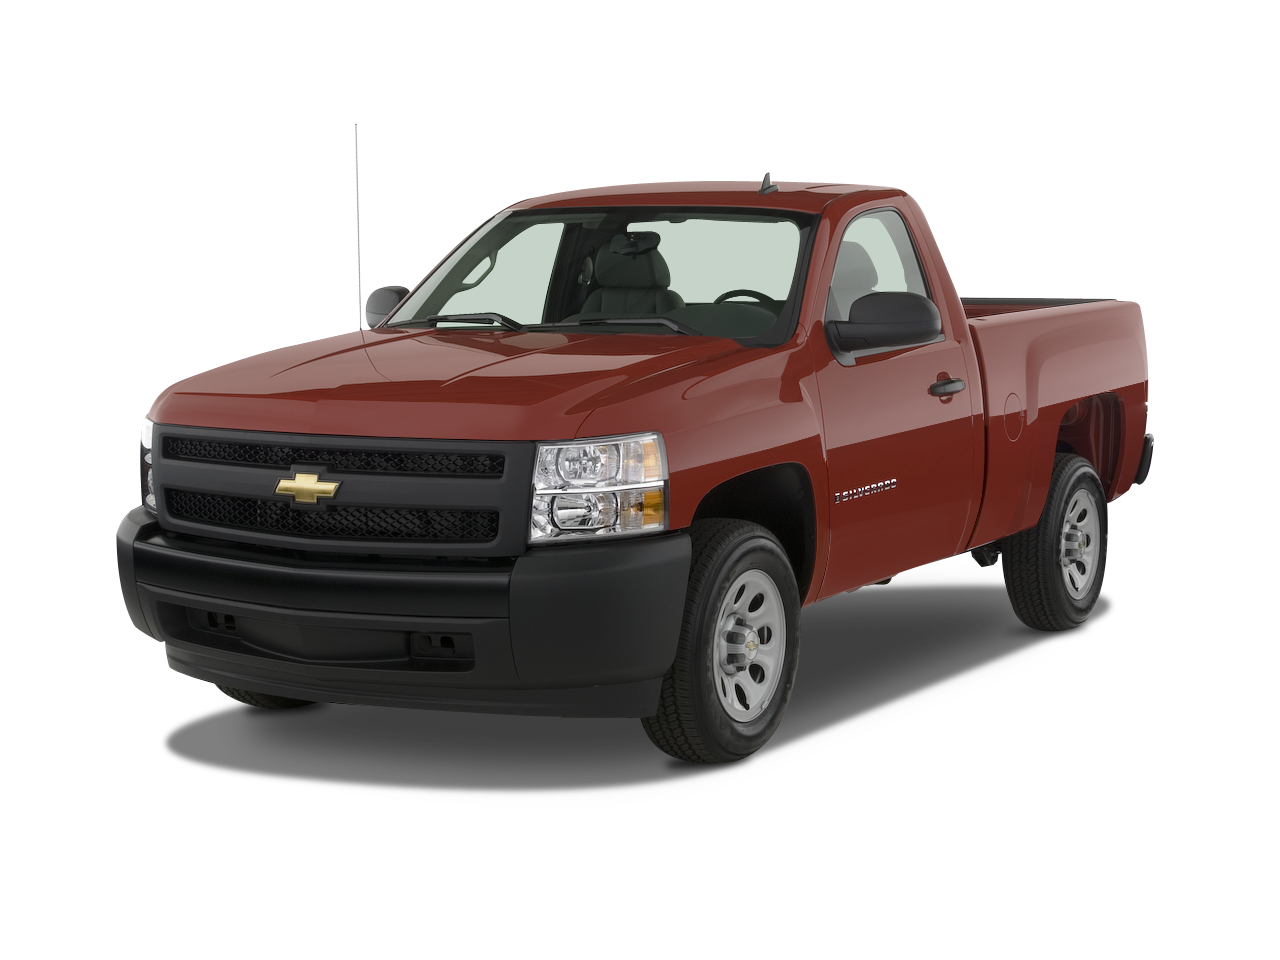 2007 chevrolet silverado and gmc sierra photos and details latest auto truck news and pictures. Black Bedroom Furniture Sets. Home Design Ideas